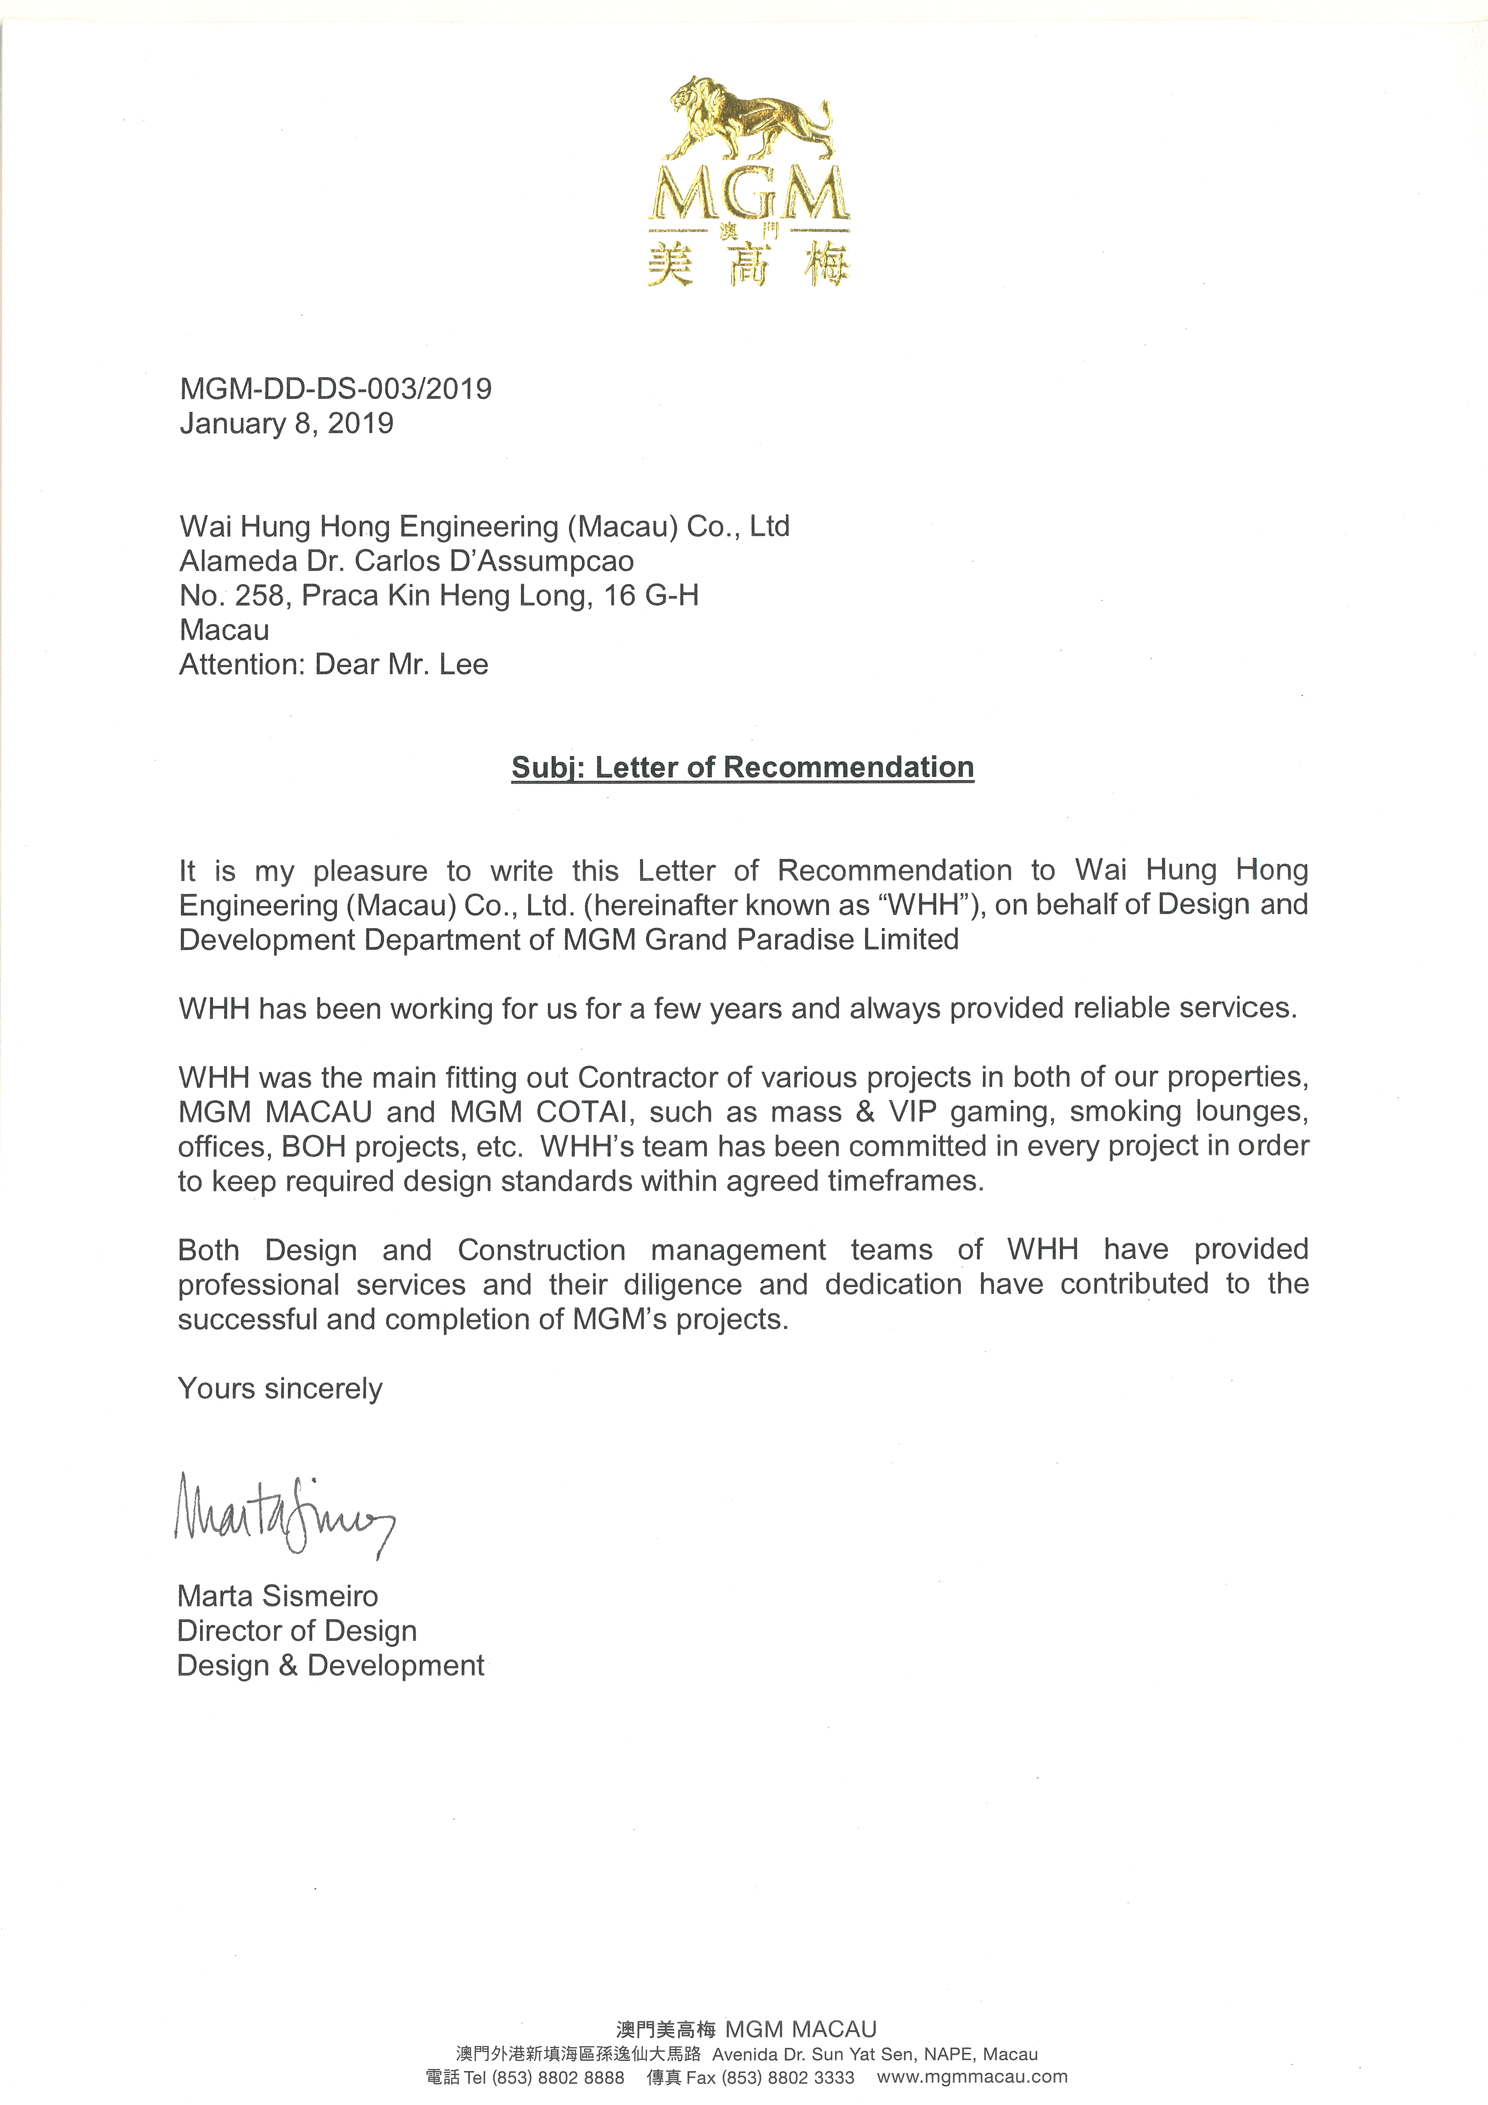 MGM MACAU - LETTER OF RECOMMENDATION 2019